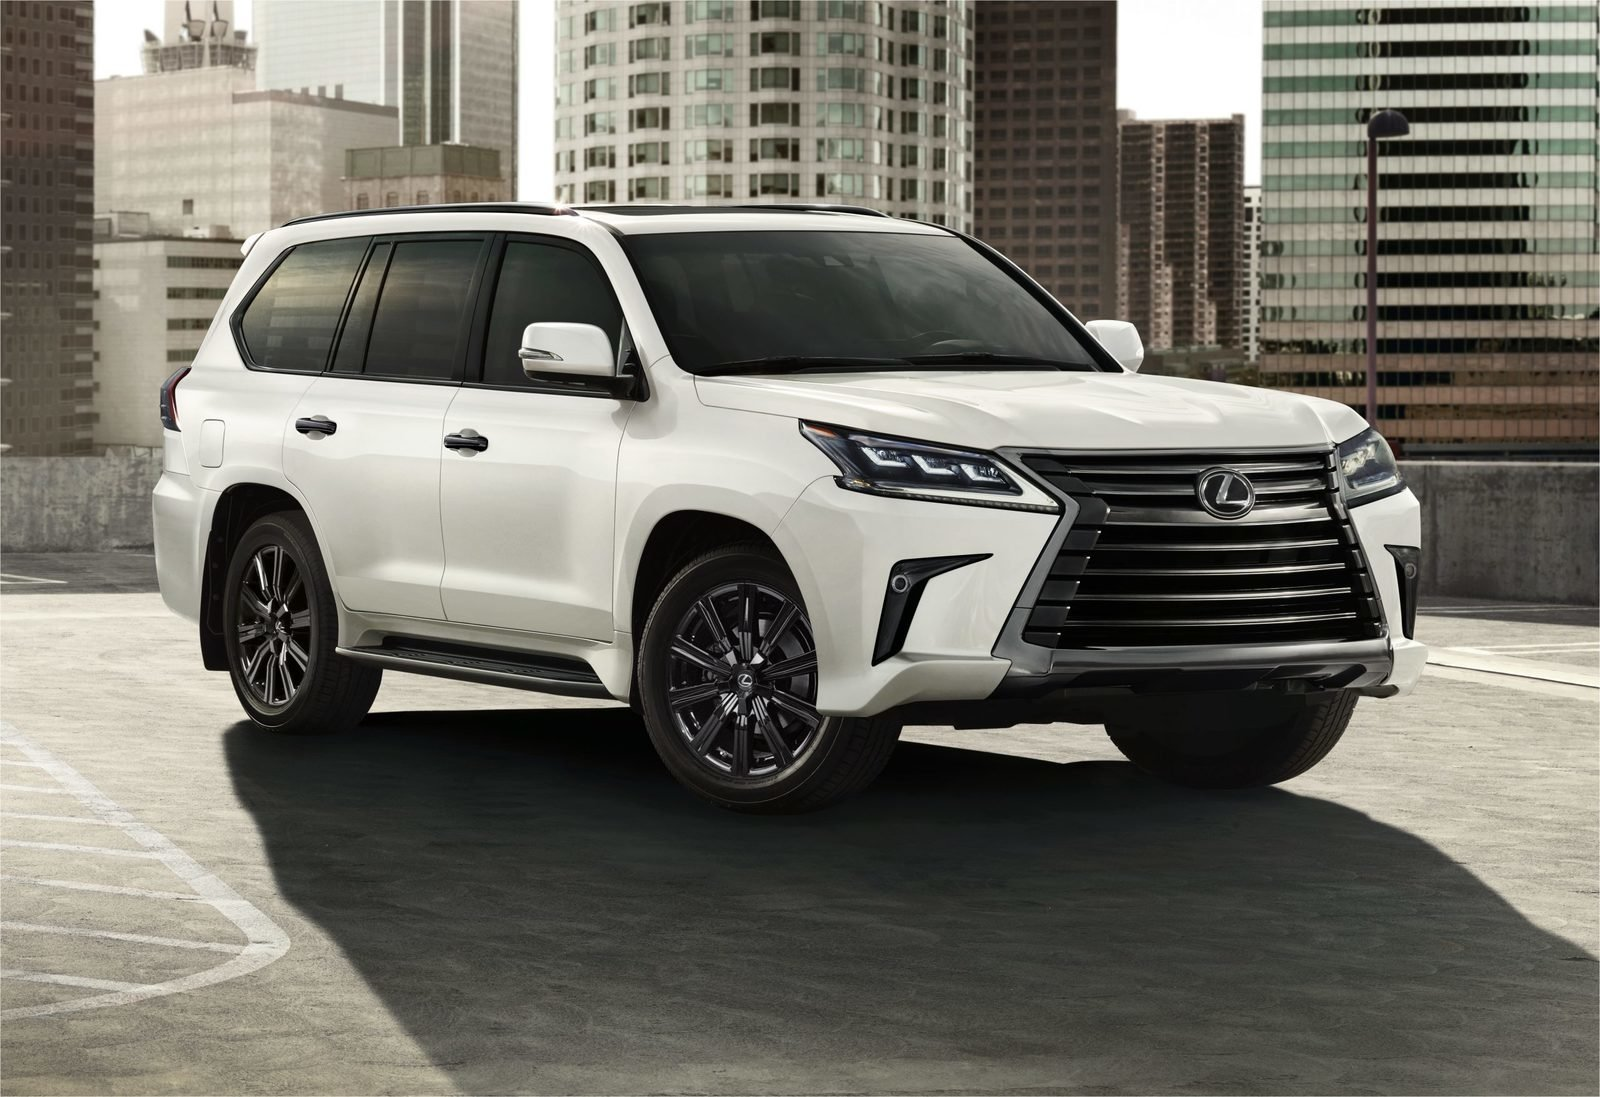 2021 Lexus LX 570 - Mildly Updated and More Exclusive